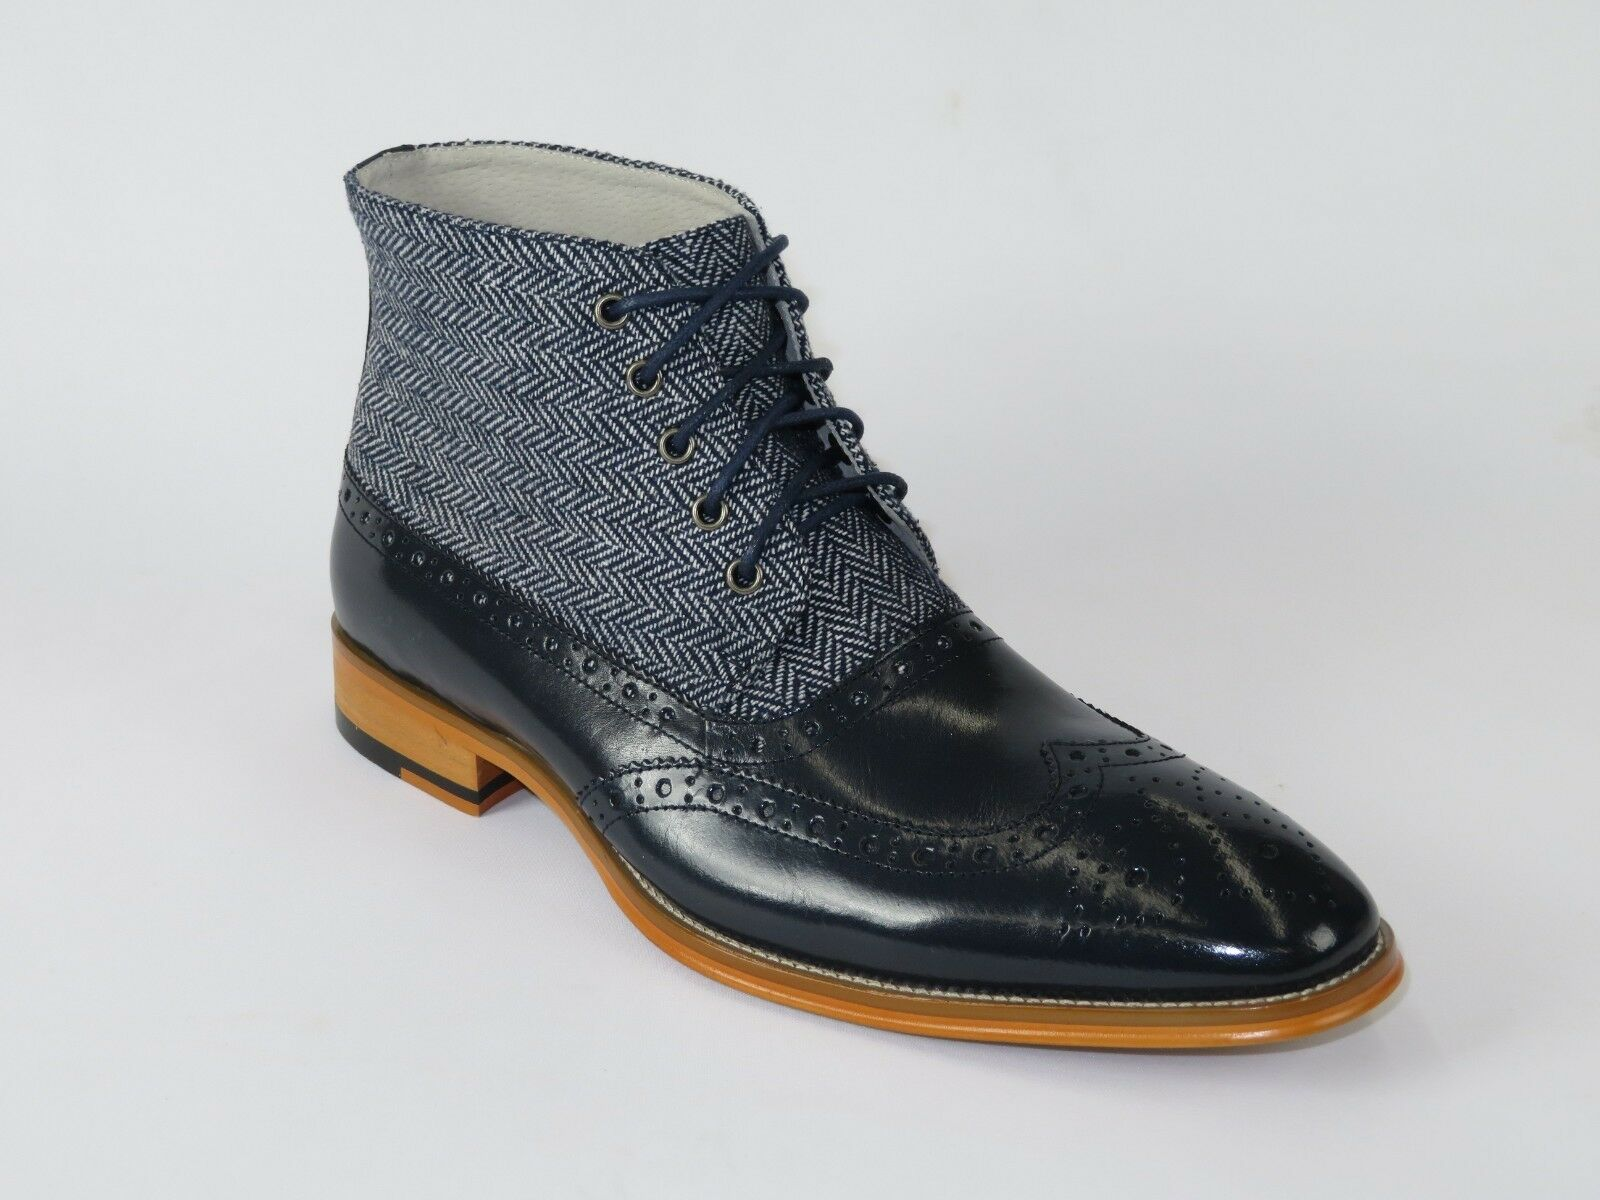 Mens High Top Boot Giovanni Leather Herringbone Tweed Fabric Griffin Navy bluee